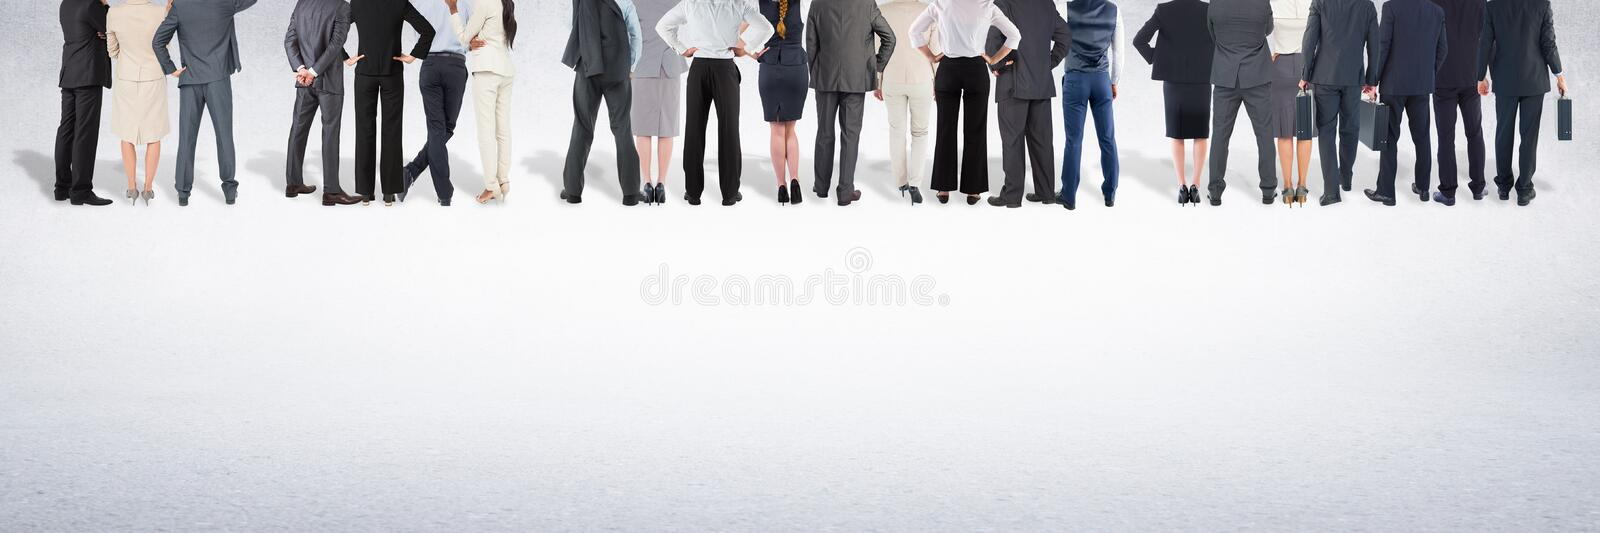 Group of business people standing in front of blank grey background royalty free stock photography